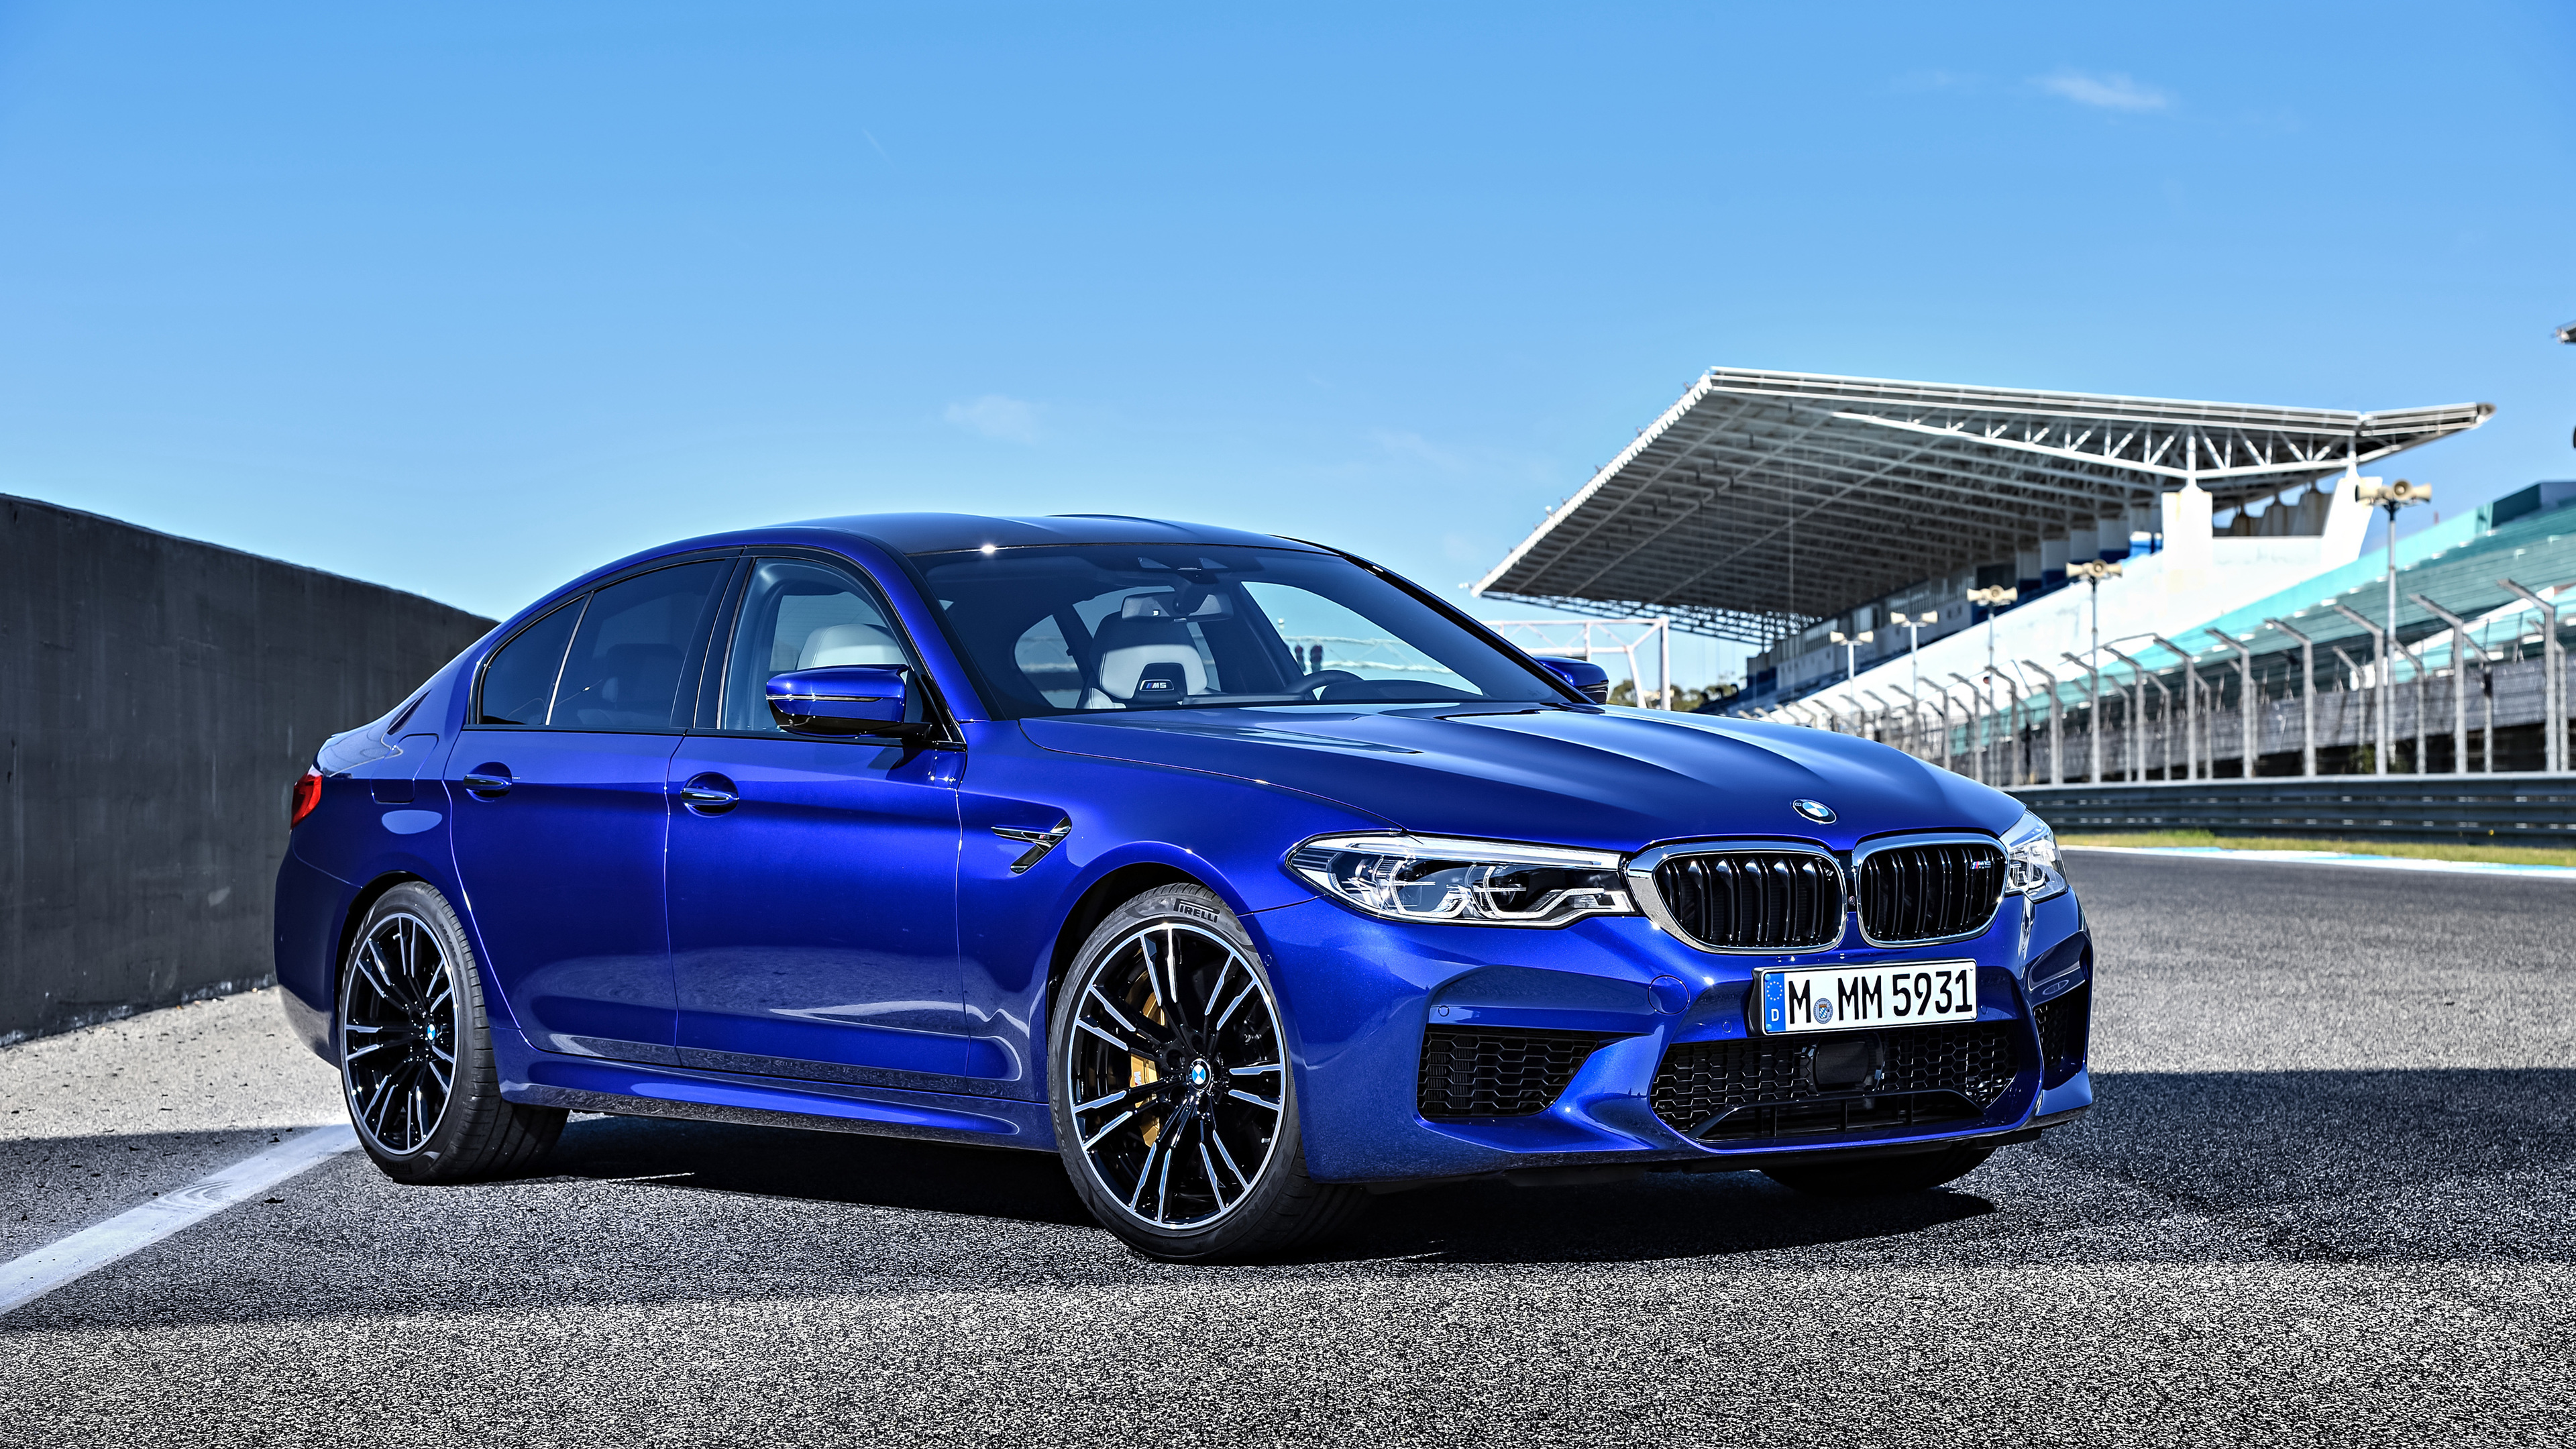 2018 bmw m5 4k 1539108517 - 2018 Bmw M5 4k - hd-wallpapers, cars wallpapers, bmw wallpapers, bmw m5 wallpapers, 4k-wallpapers, 2018 cars wallpapers